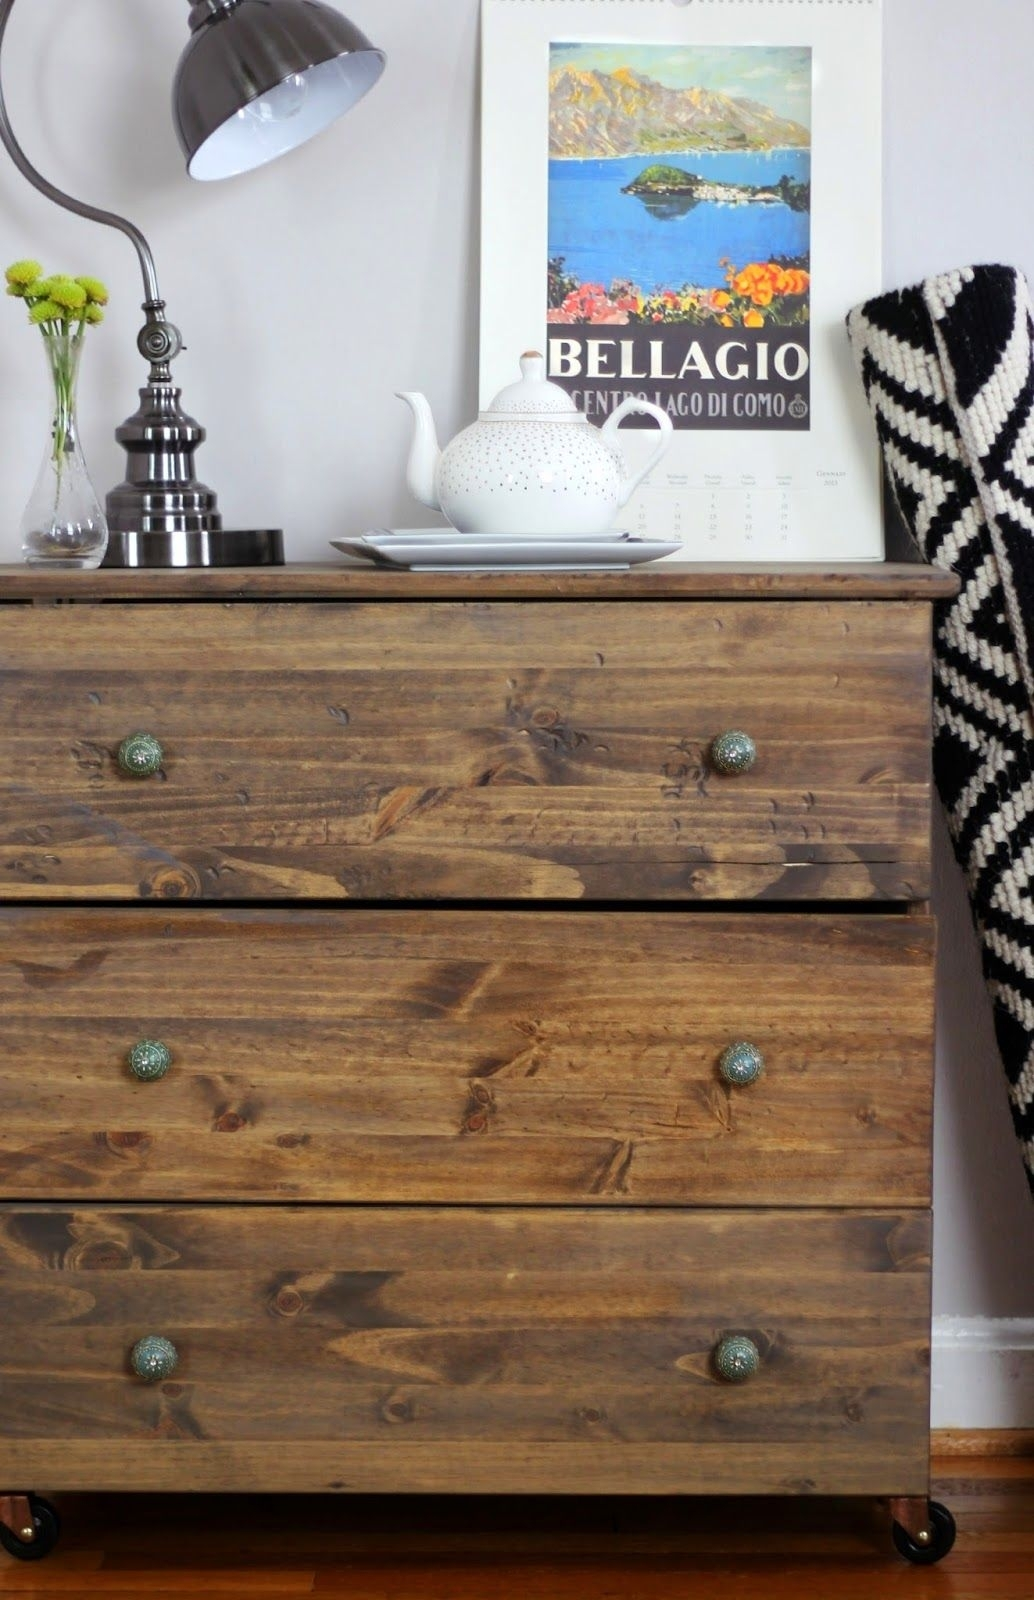 10 Amazing Ikea Tarva Hacks | Create | Pinterest | Ikea, Ikea Hack with Helms Sideboards (Image 1 of 30)